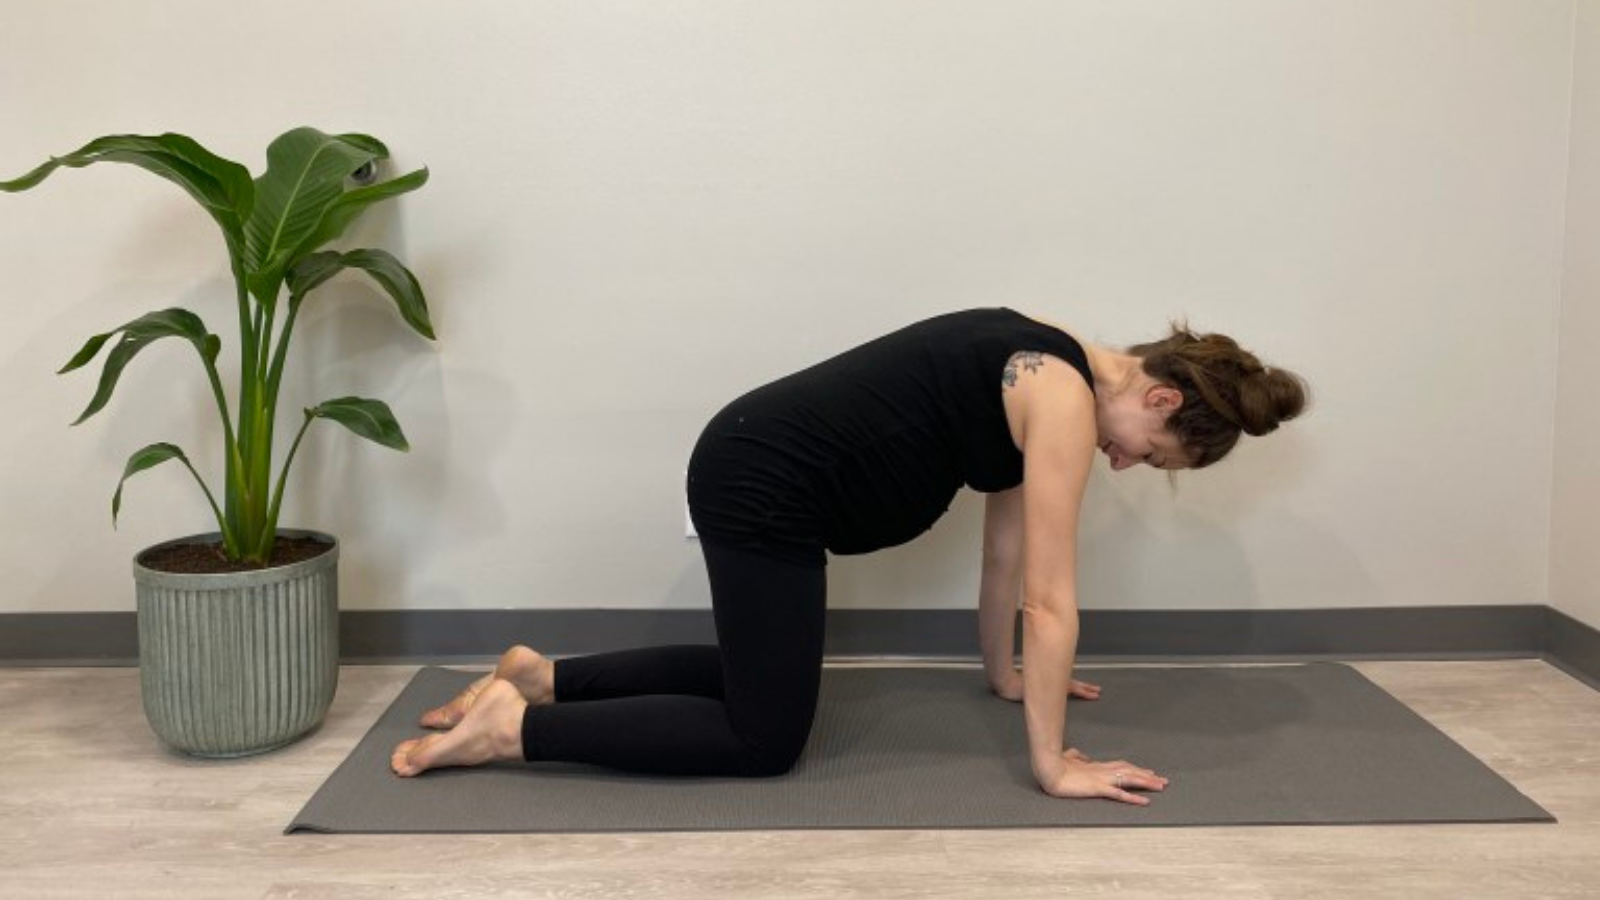 Yoga teaching tips for pregnant students to practice Cat Pose (Marjariasana) for increased spine and pelvis mobility